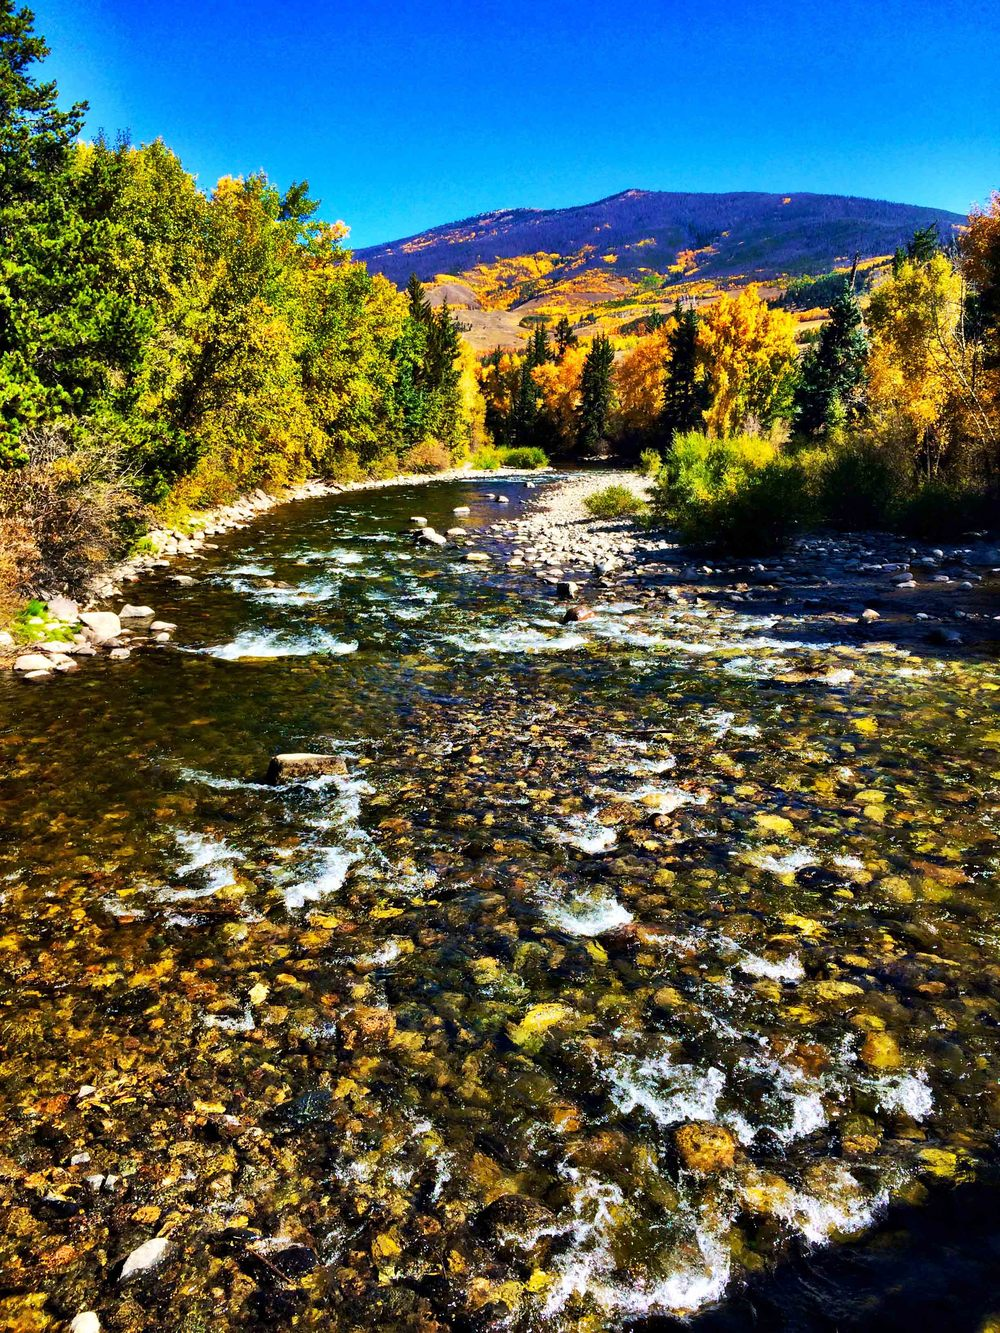 Silverthorne, Colorado, September 2015